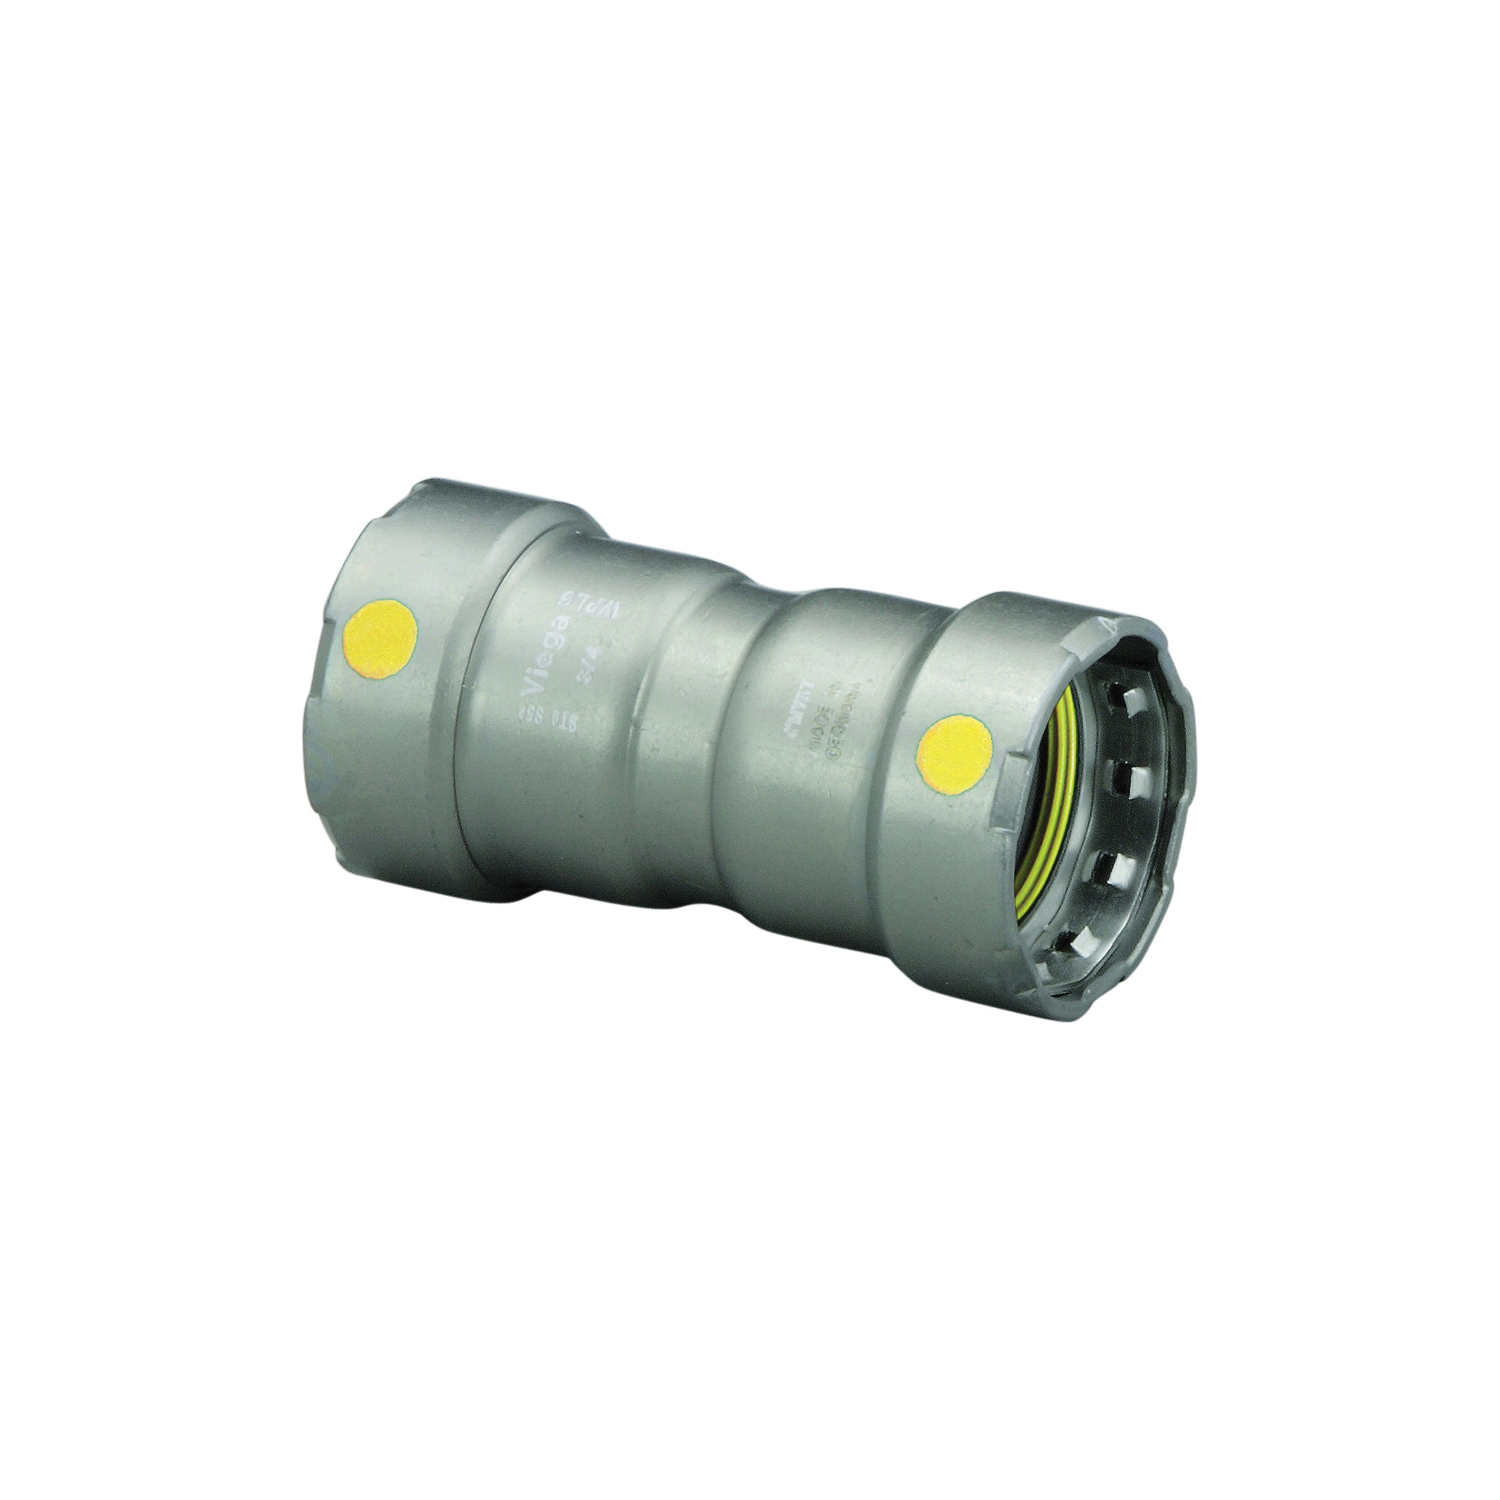 MegaPress®G 22009 Pipe Coupling With Stop, 3/4 in Nominal, Press End Style, Carbon Steel, Import